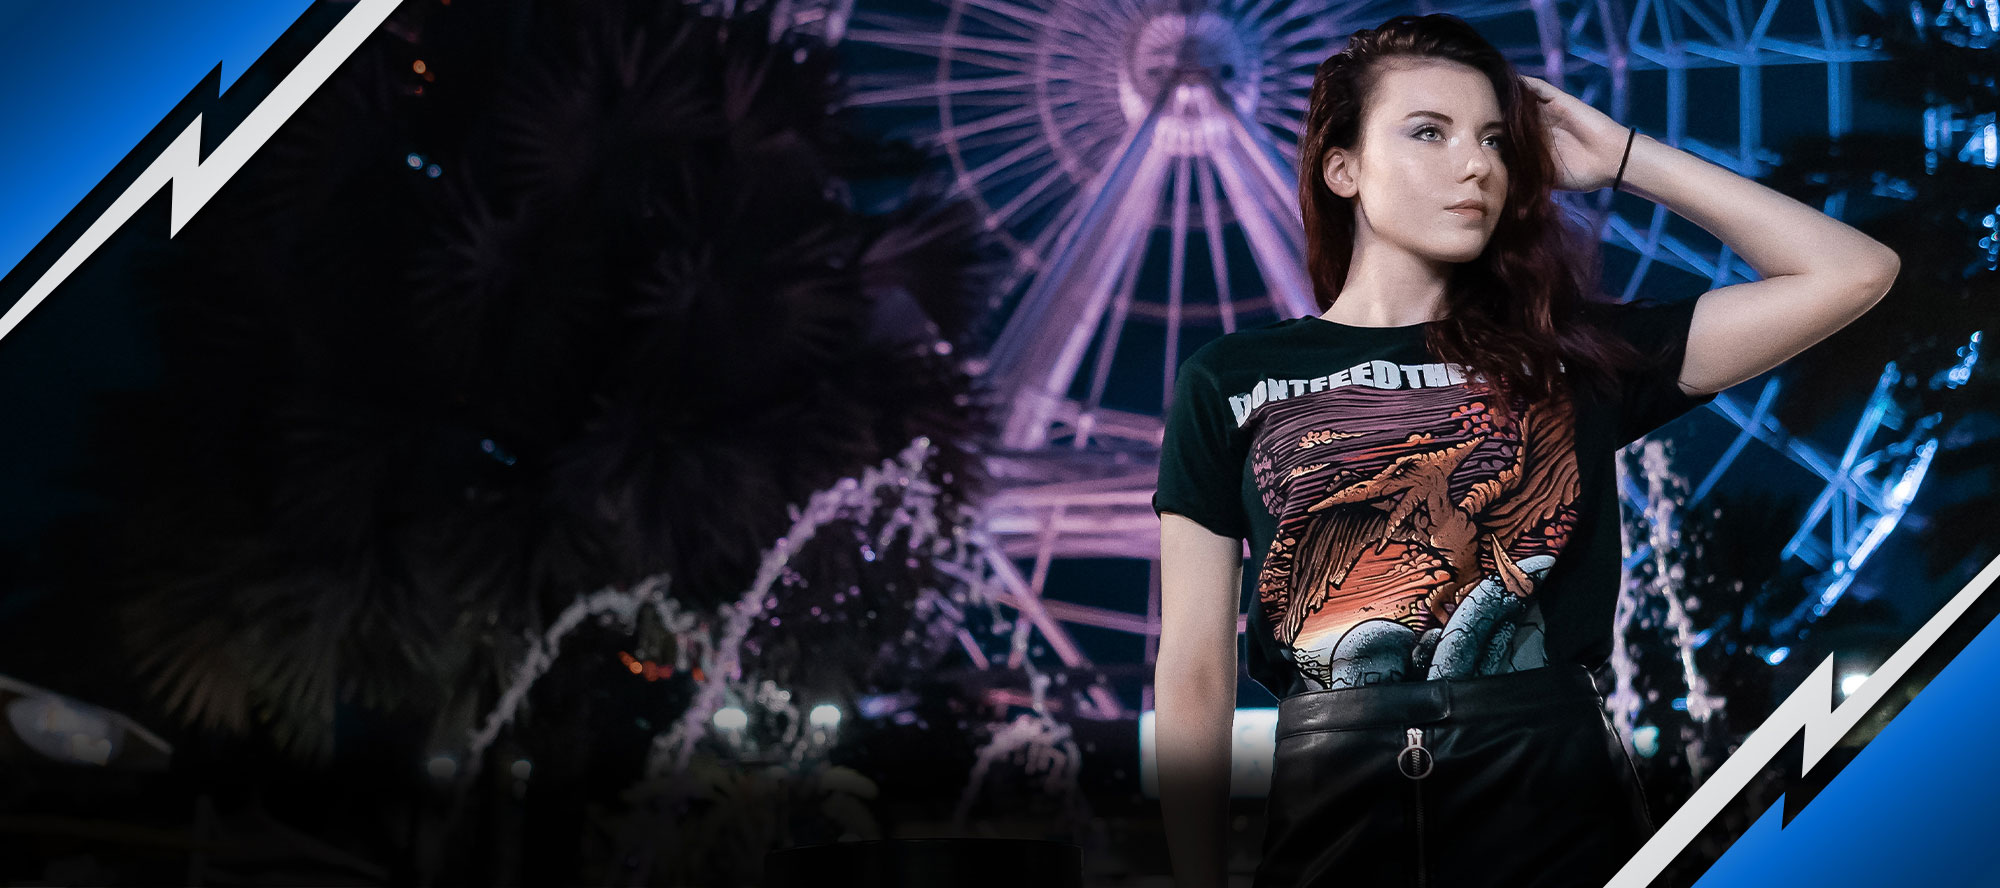 a girl showing off a custom printed t-shirt